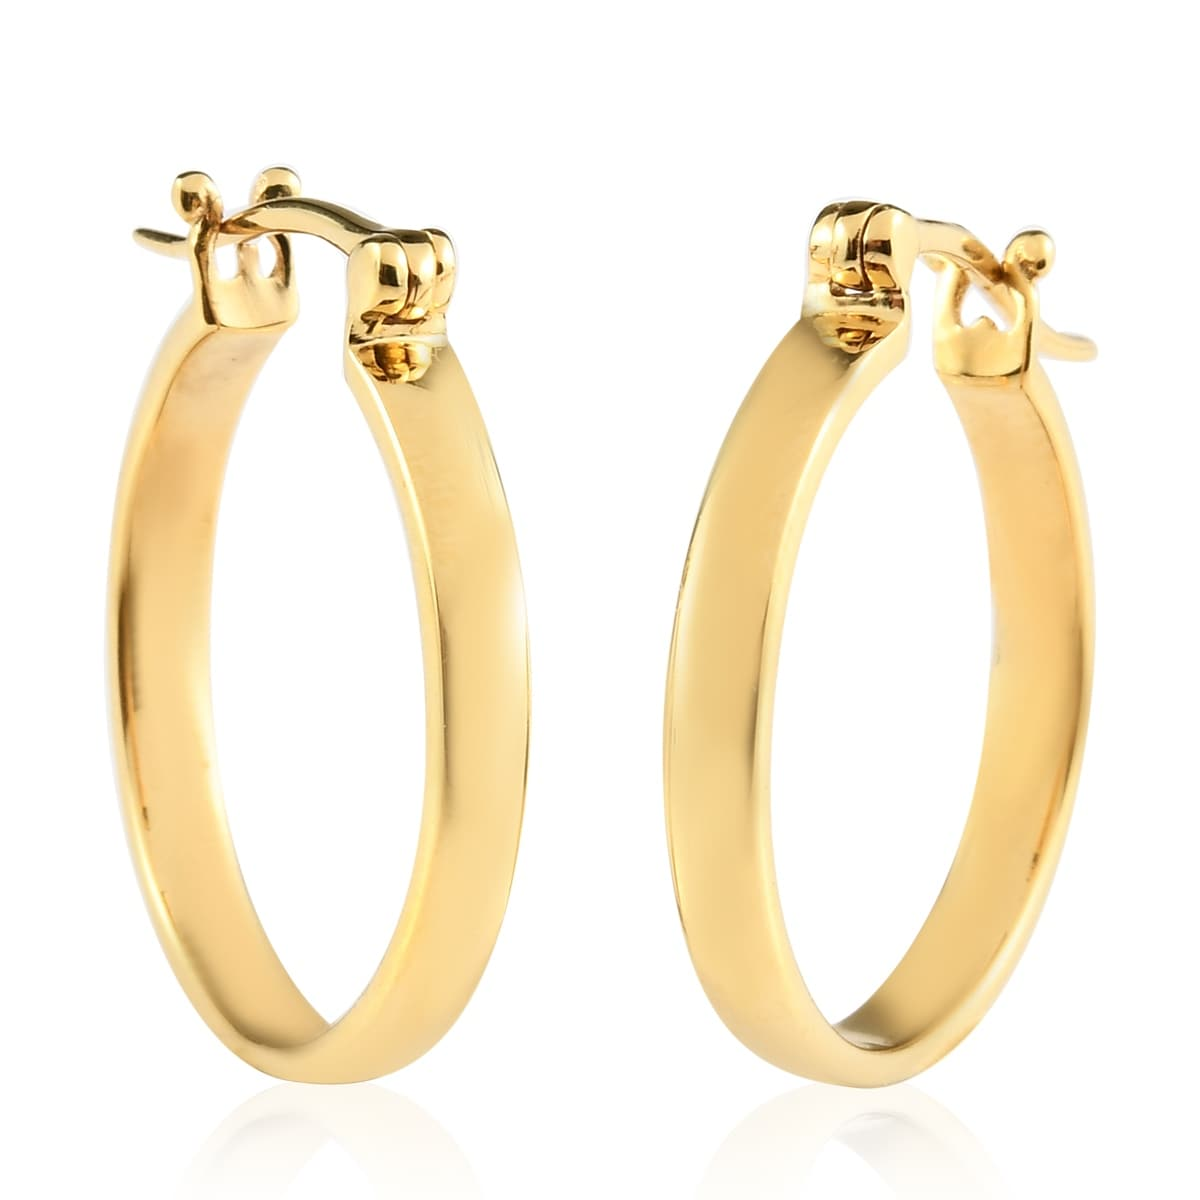 22K Gold Over Sterling Silver Hinged Hoop Earrings w Silver Beads 2 Sizes